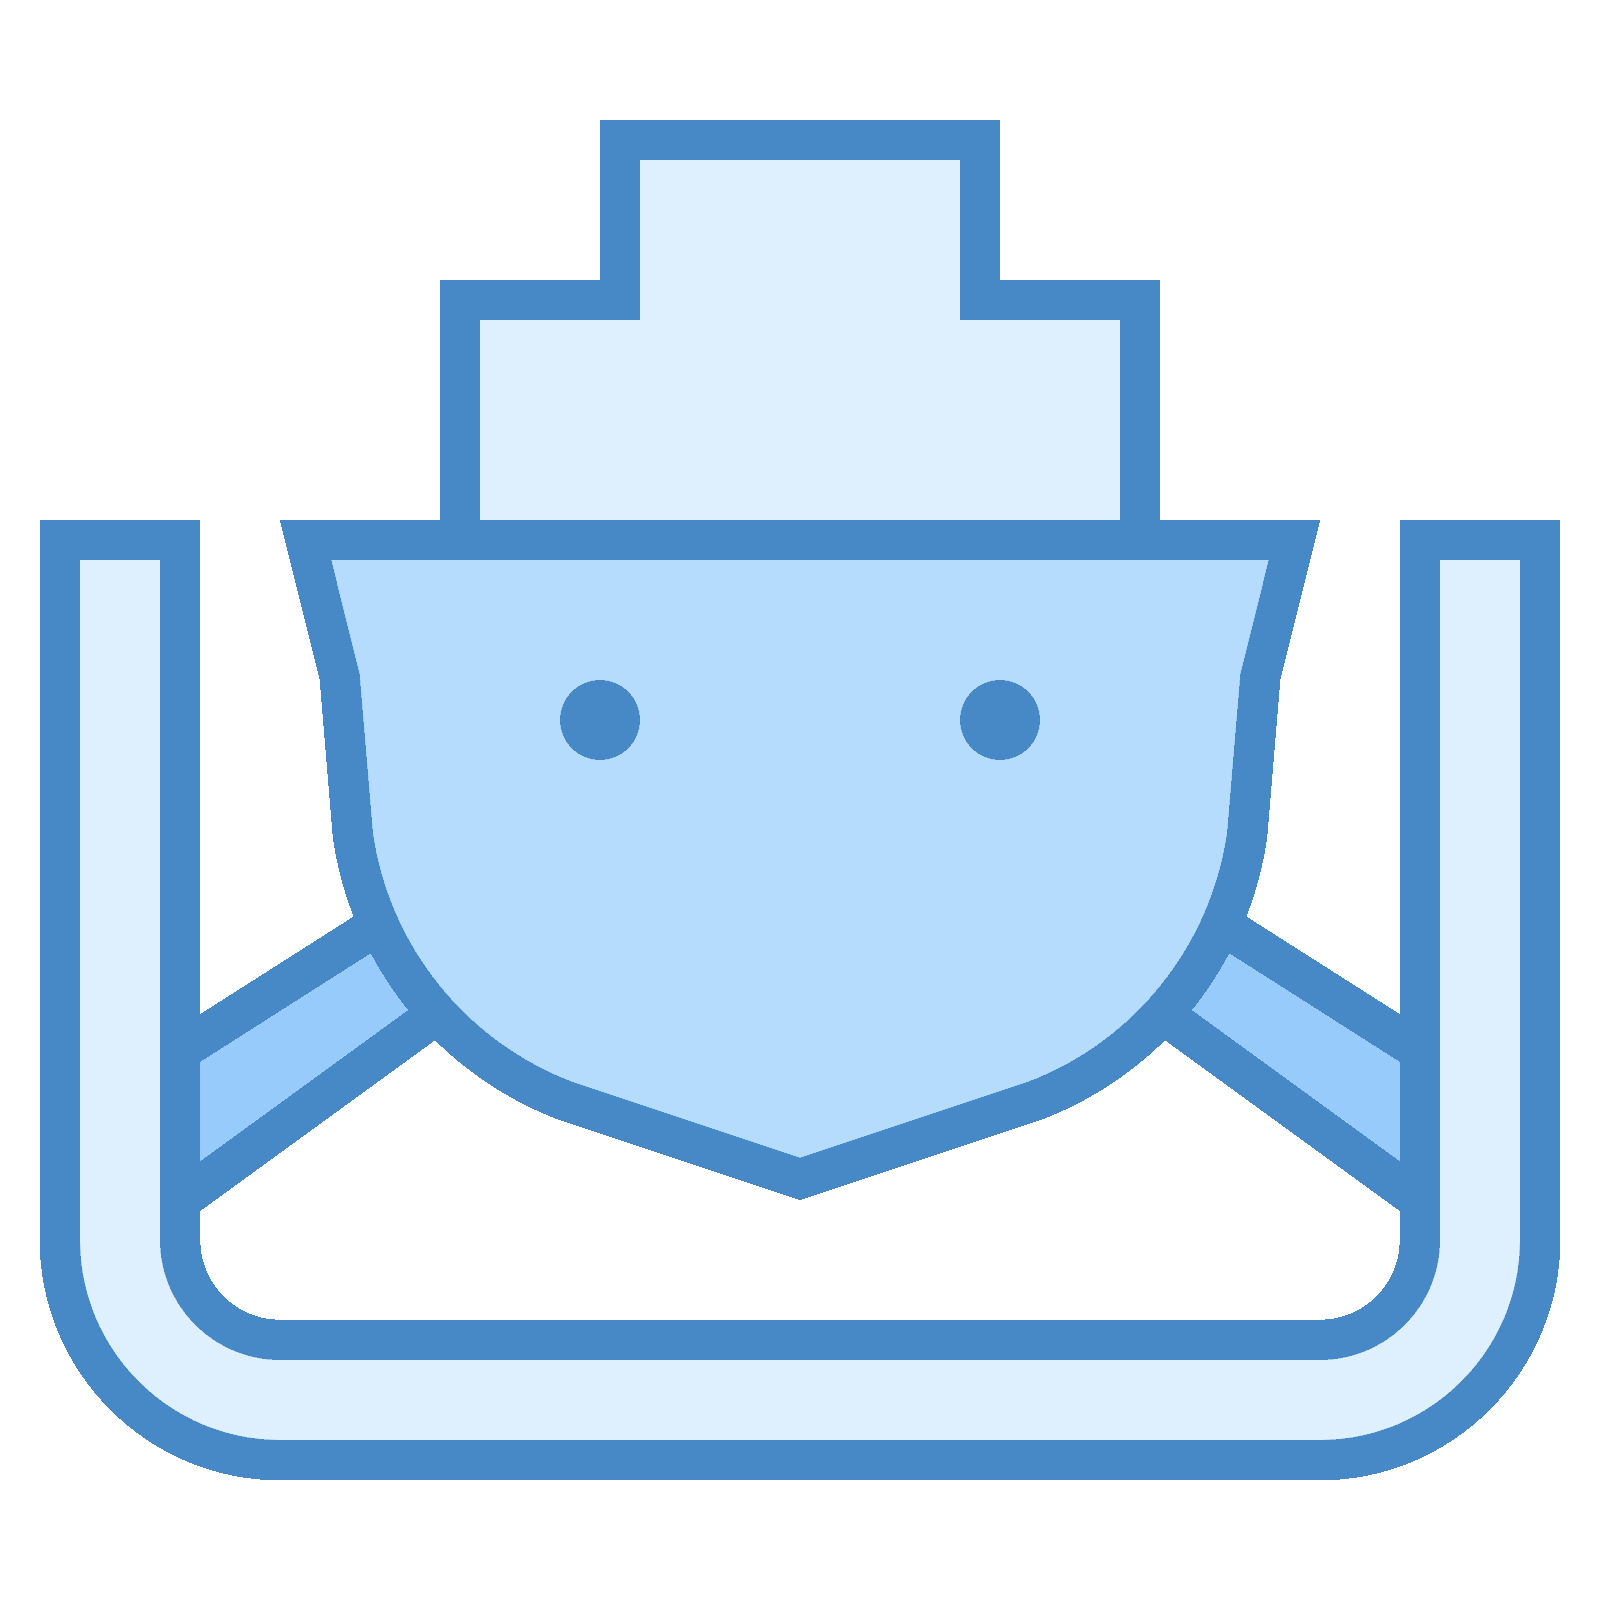 Pier vector jetty. Wharf png icon